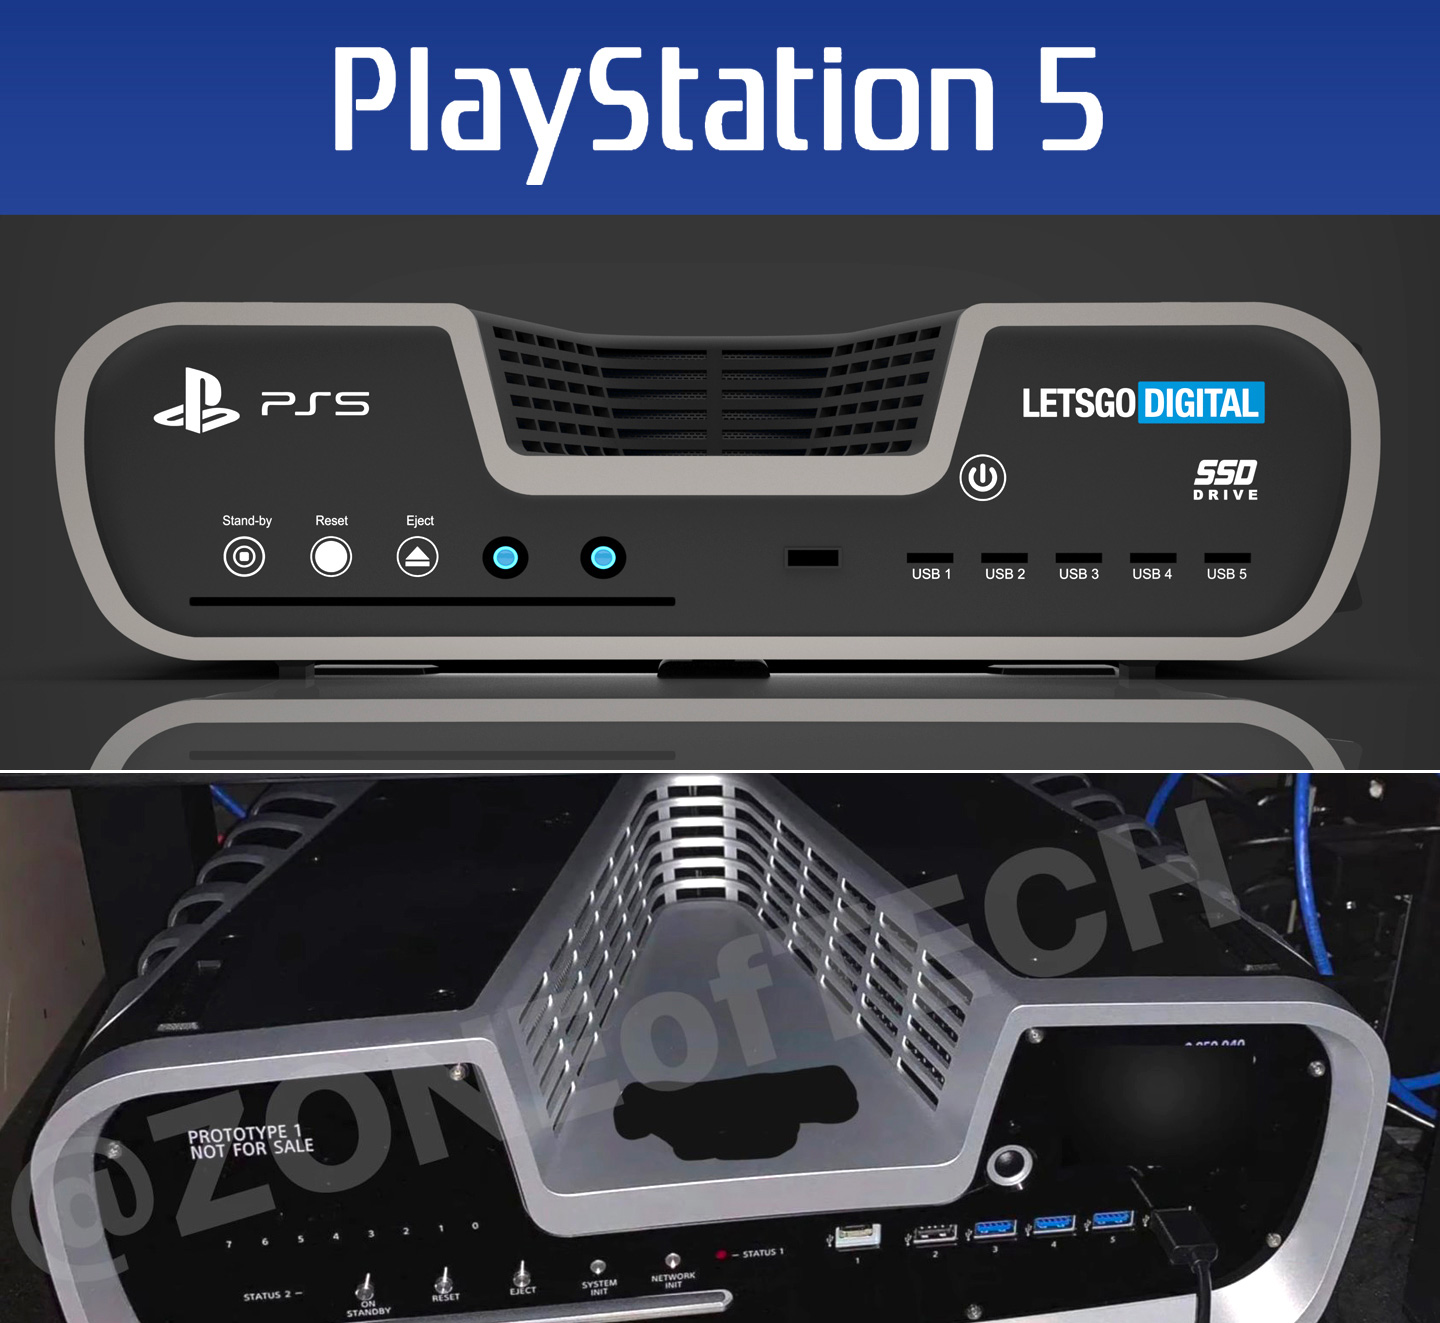 Sony PS5 Dev Kit